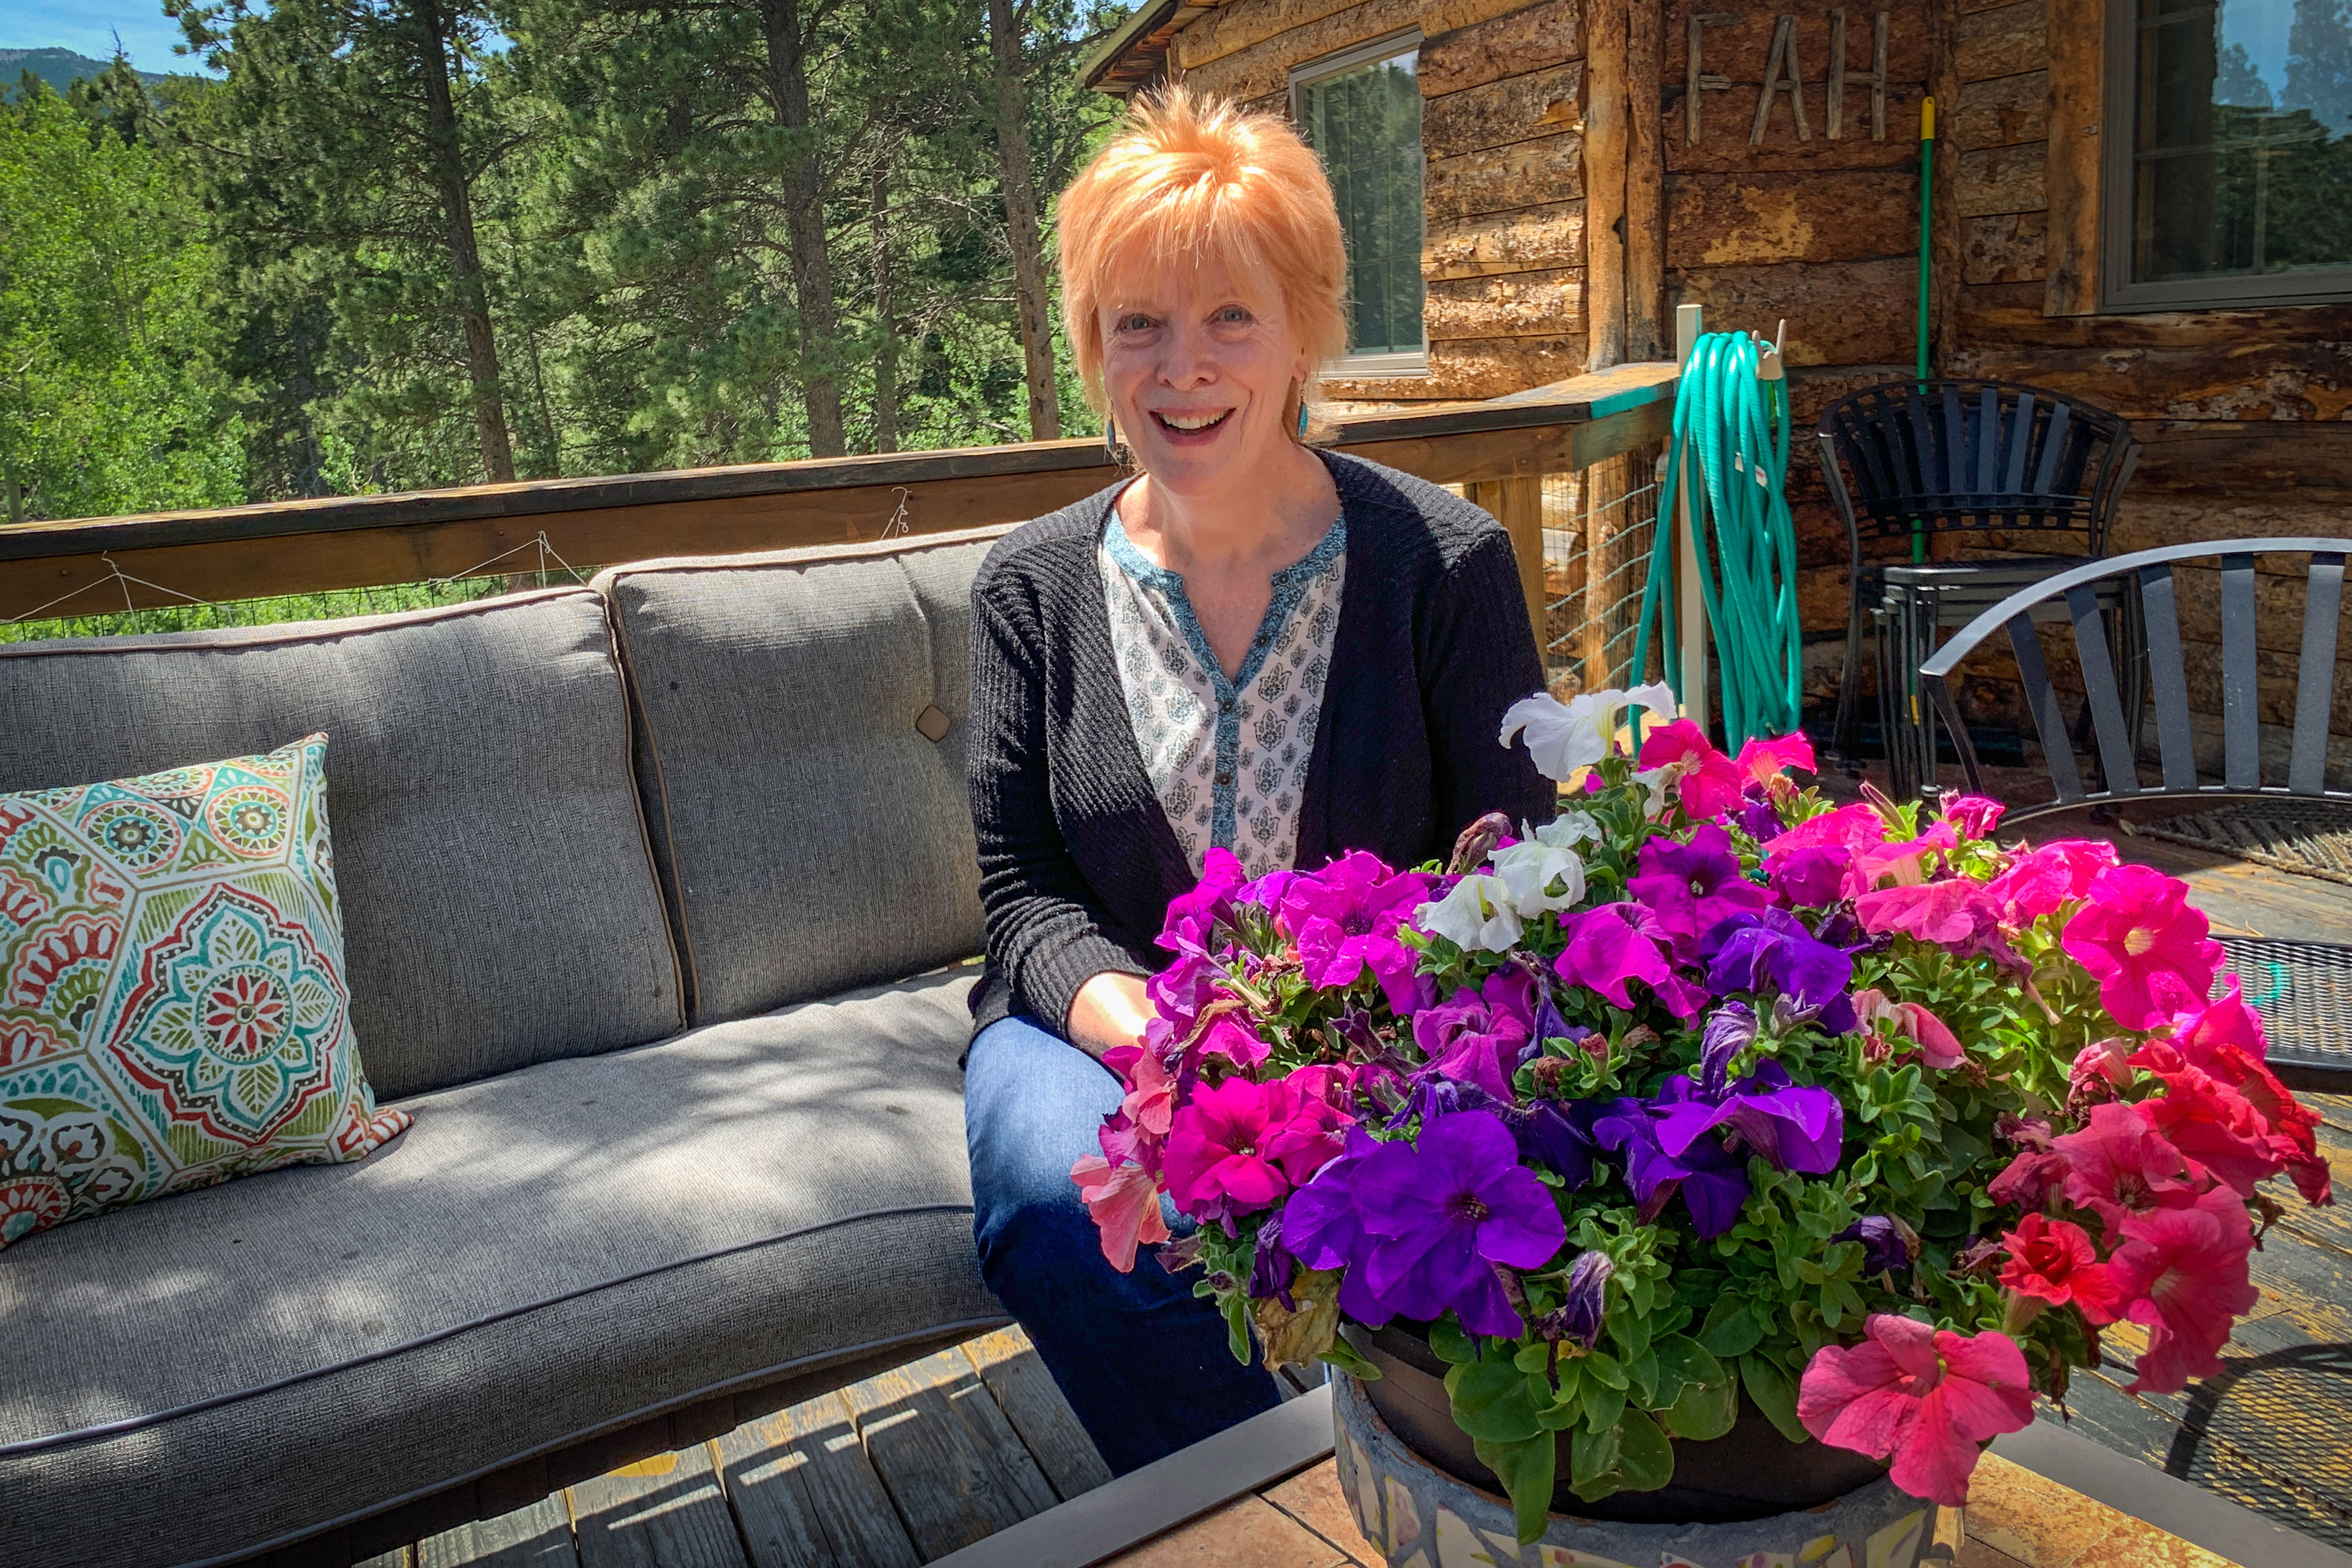 Edie DeWeese of The Allenspark Wind and an amateur historian for the former mining town.